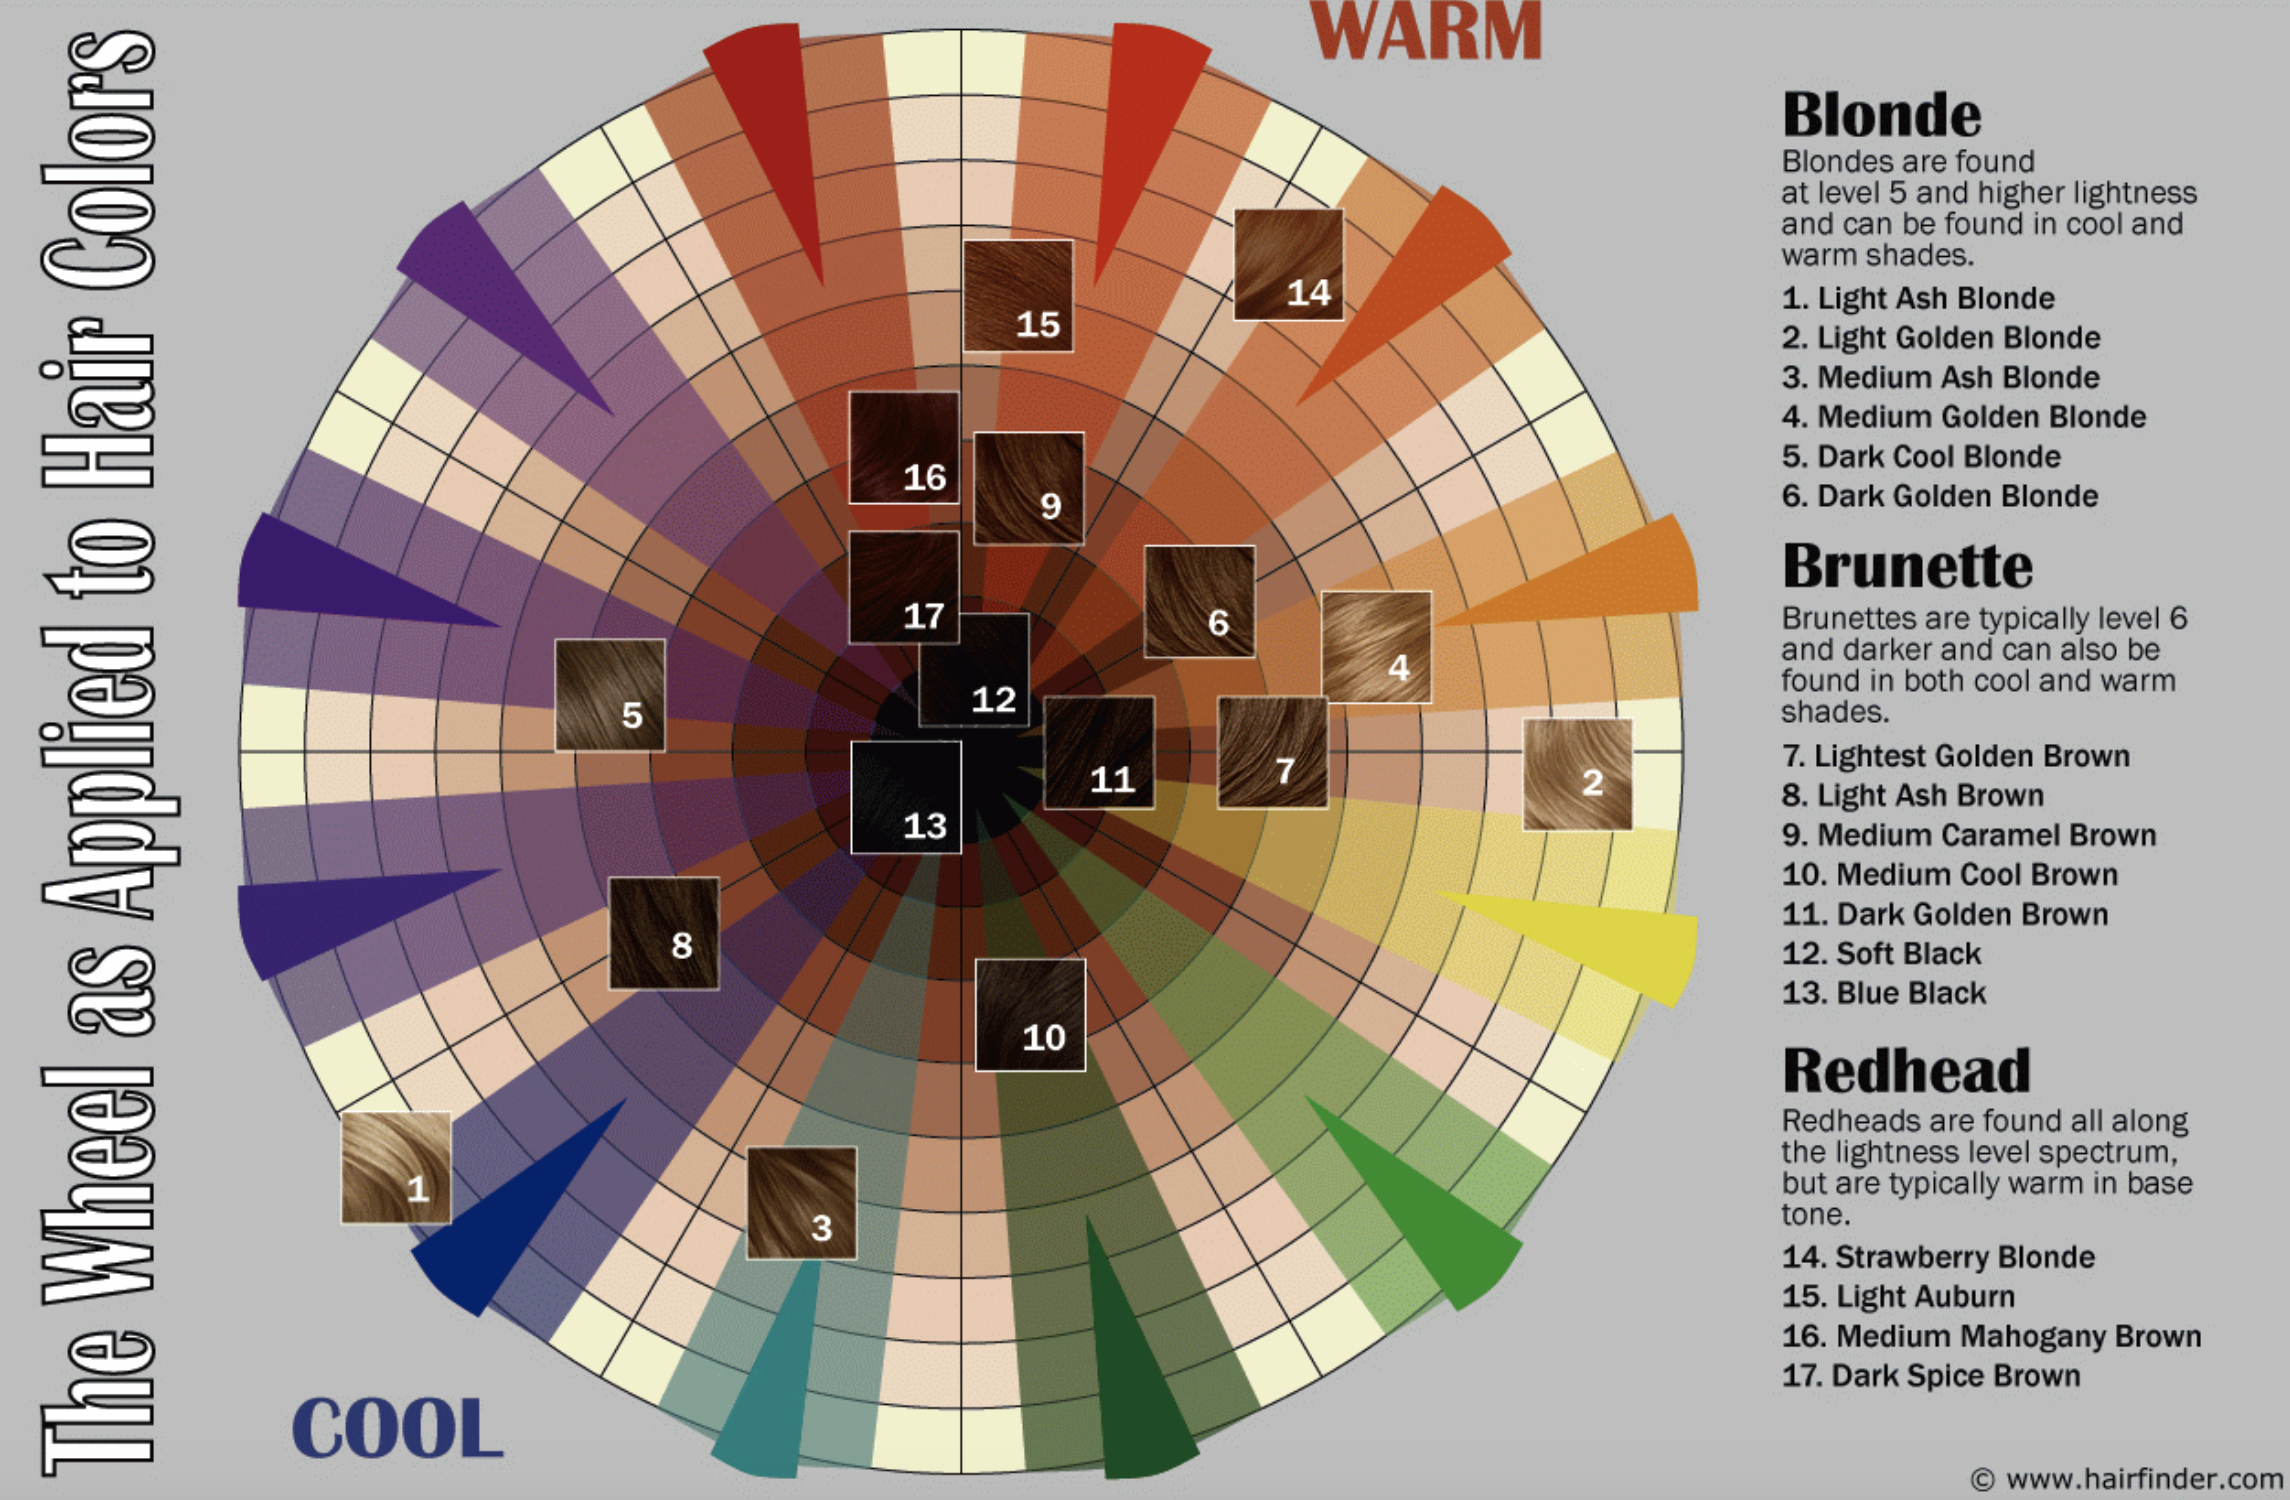 Hair Color Wheel The Best Color For You Is Within 2 Shades In 2020 Hair Color Wheel Matrix Hair Color Clairol Hair Color